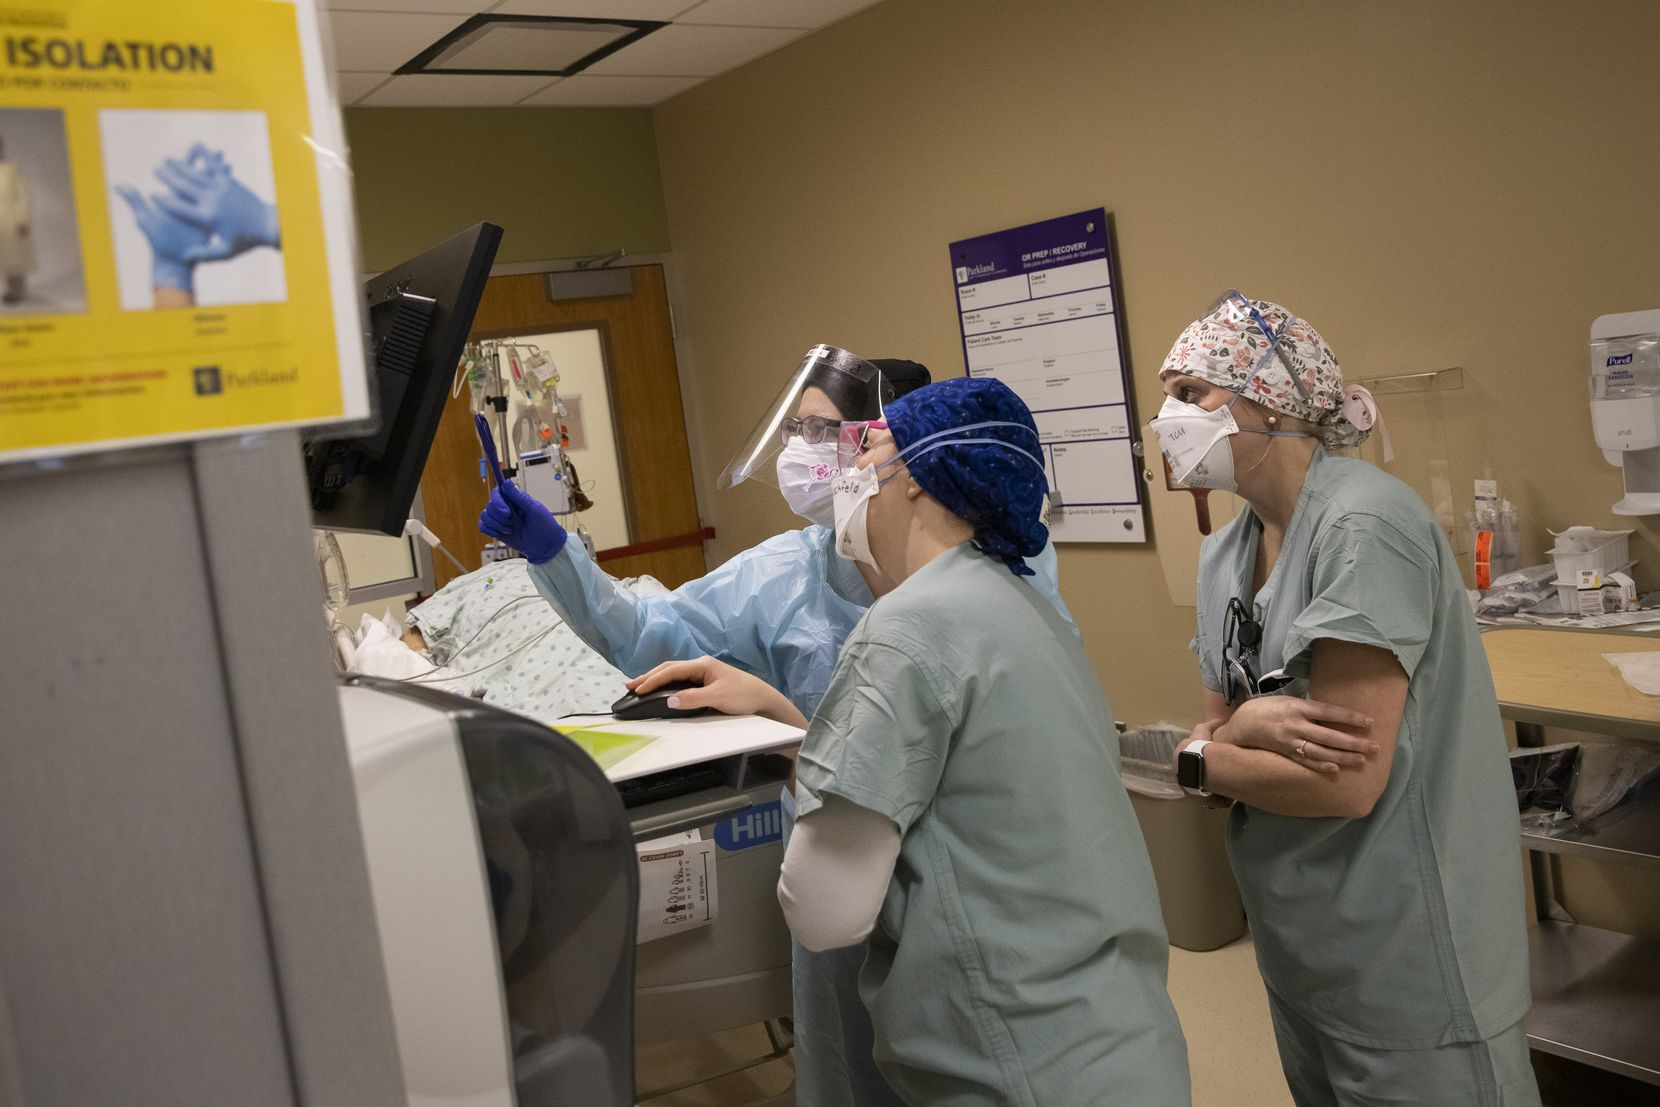 From left: Nurses Kelsey O'Meara, Noelle Hackfeld and Joanna Pless review an intubated COVID-19 patient's oxygen levels in the Tactical Care Unit at Parkland Memorial Hospital.